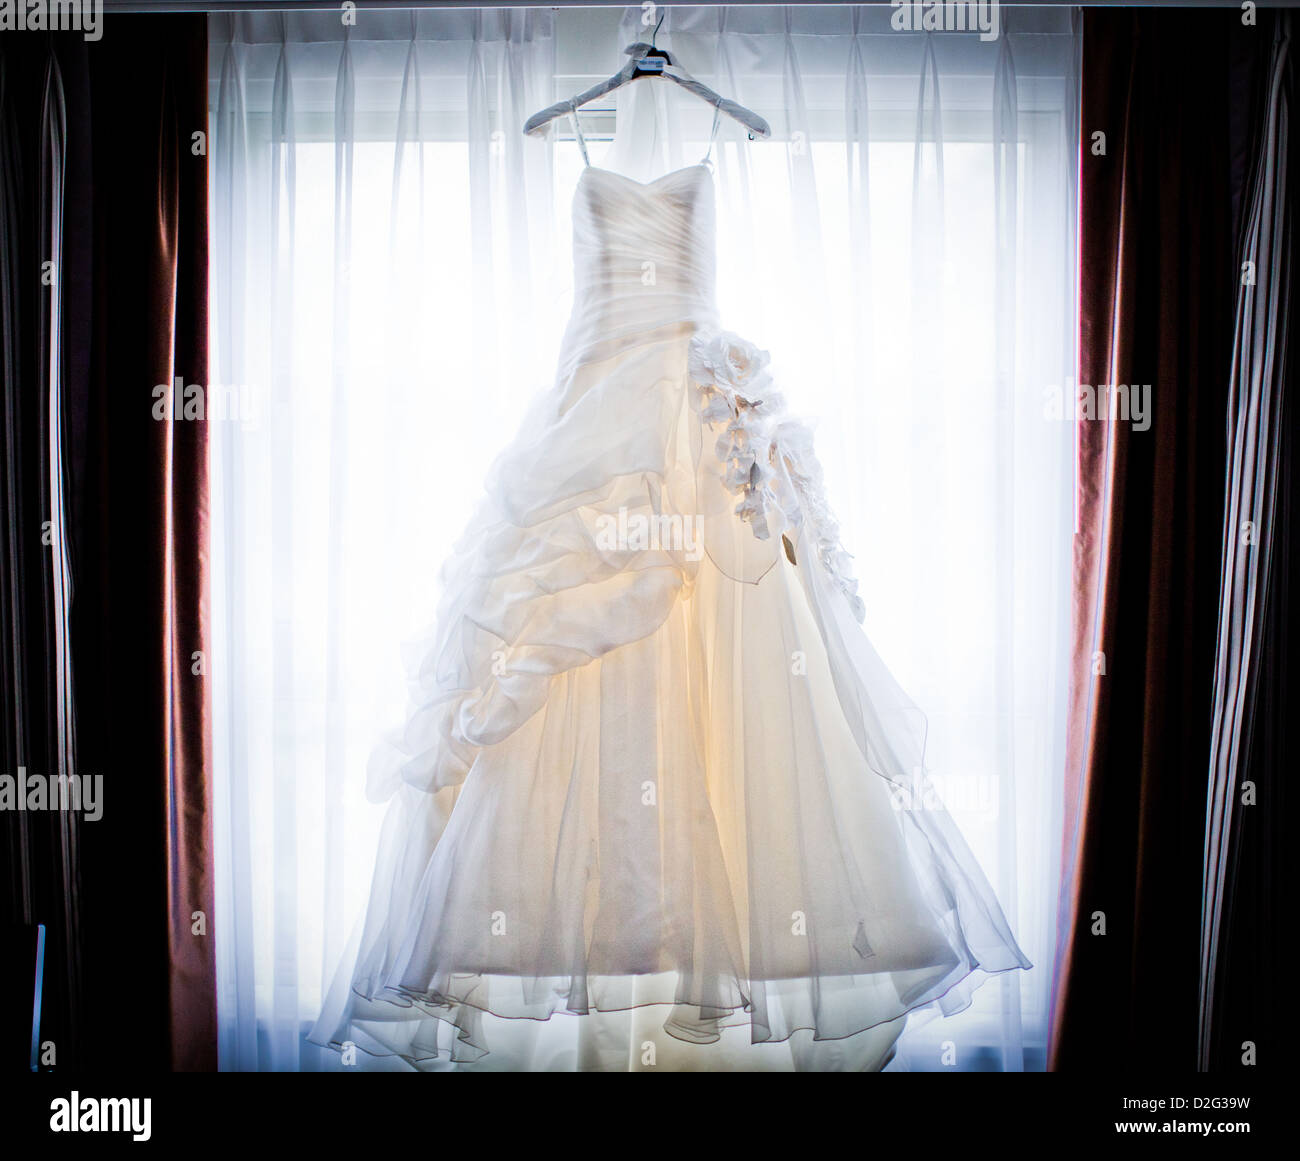 Photo Of A Beautiful White Wedding Dress Hanging Up In Window